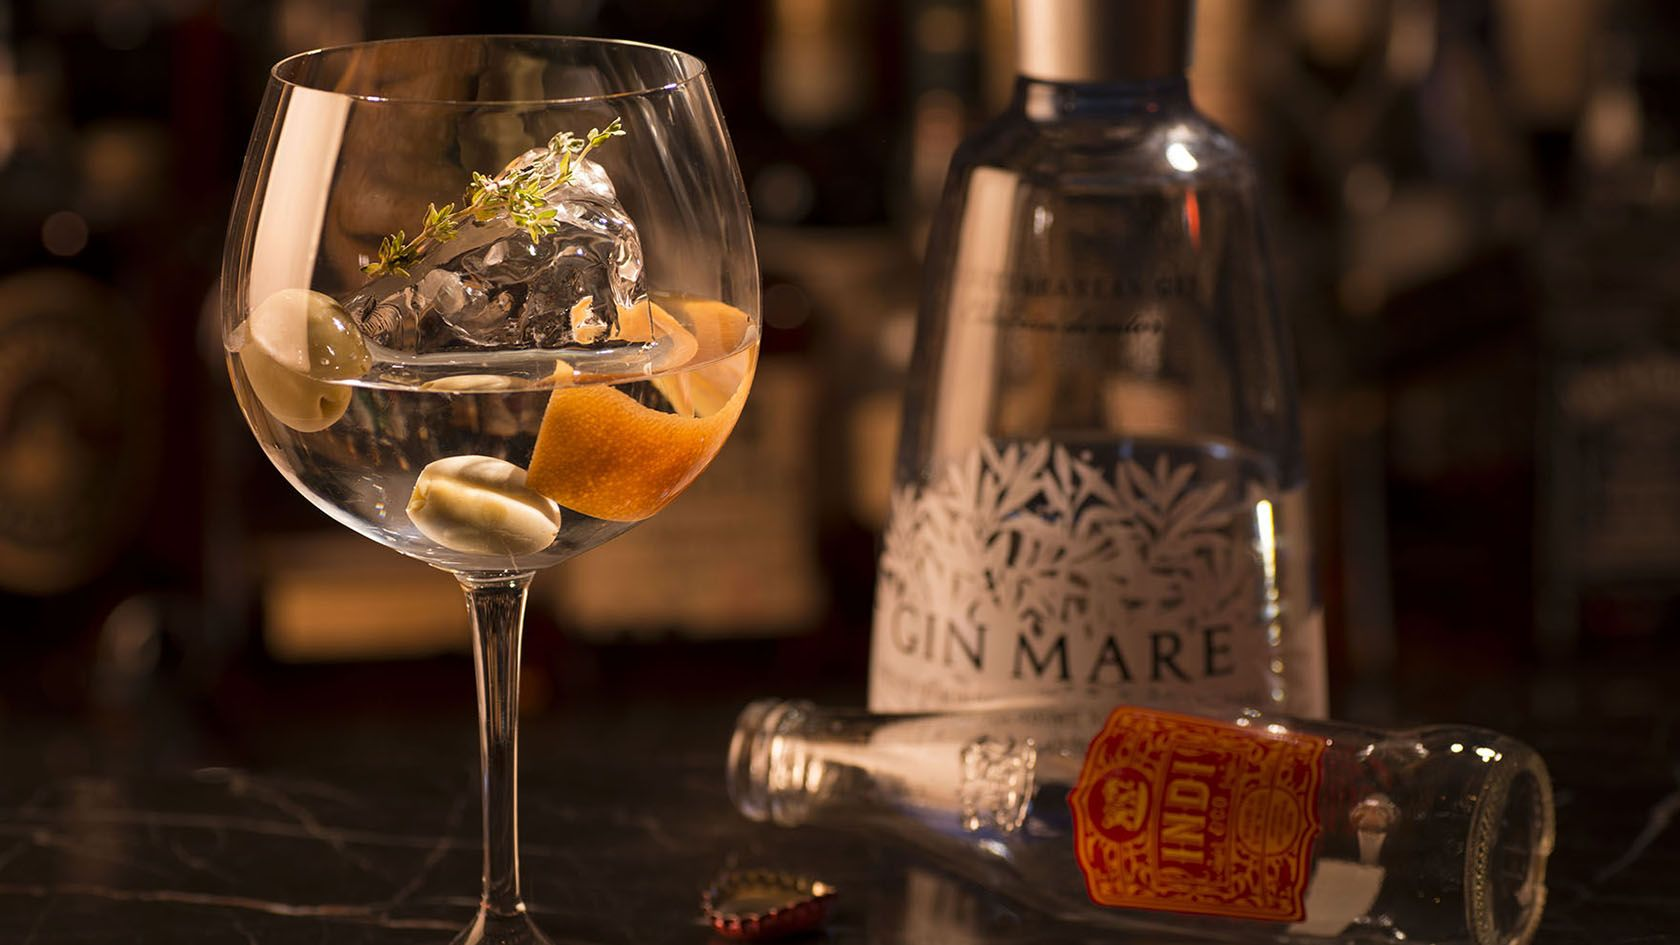 Know Your Spirits: 6 Places That Know Their Gin